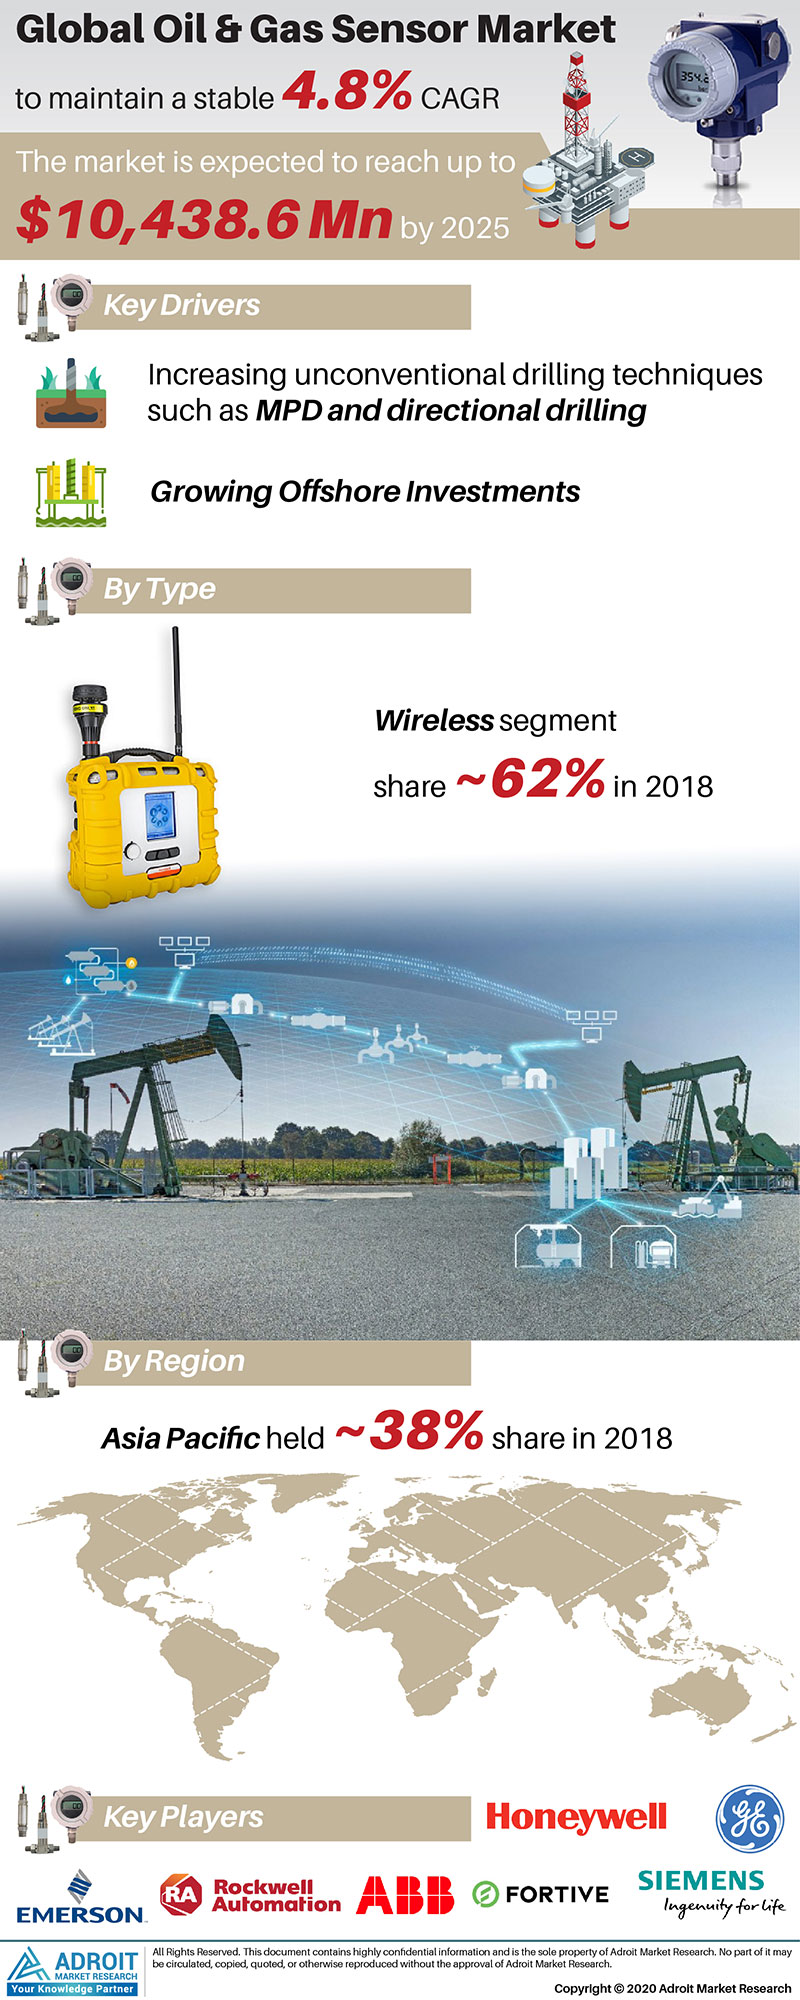 Oil & Gas Sensor Market Size 2017 By Application, Product, Region and Forecast 2019 to 2025